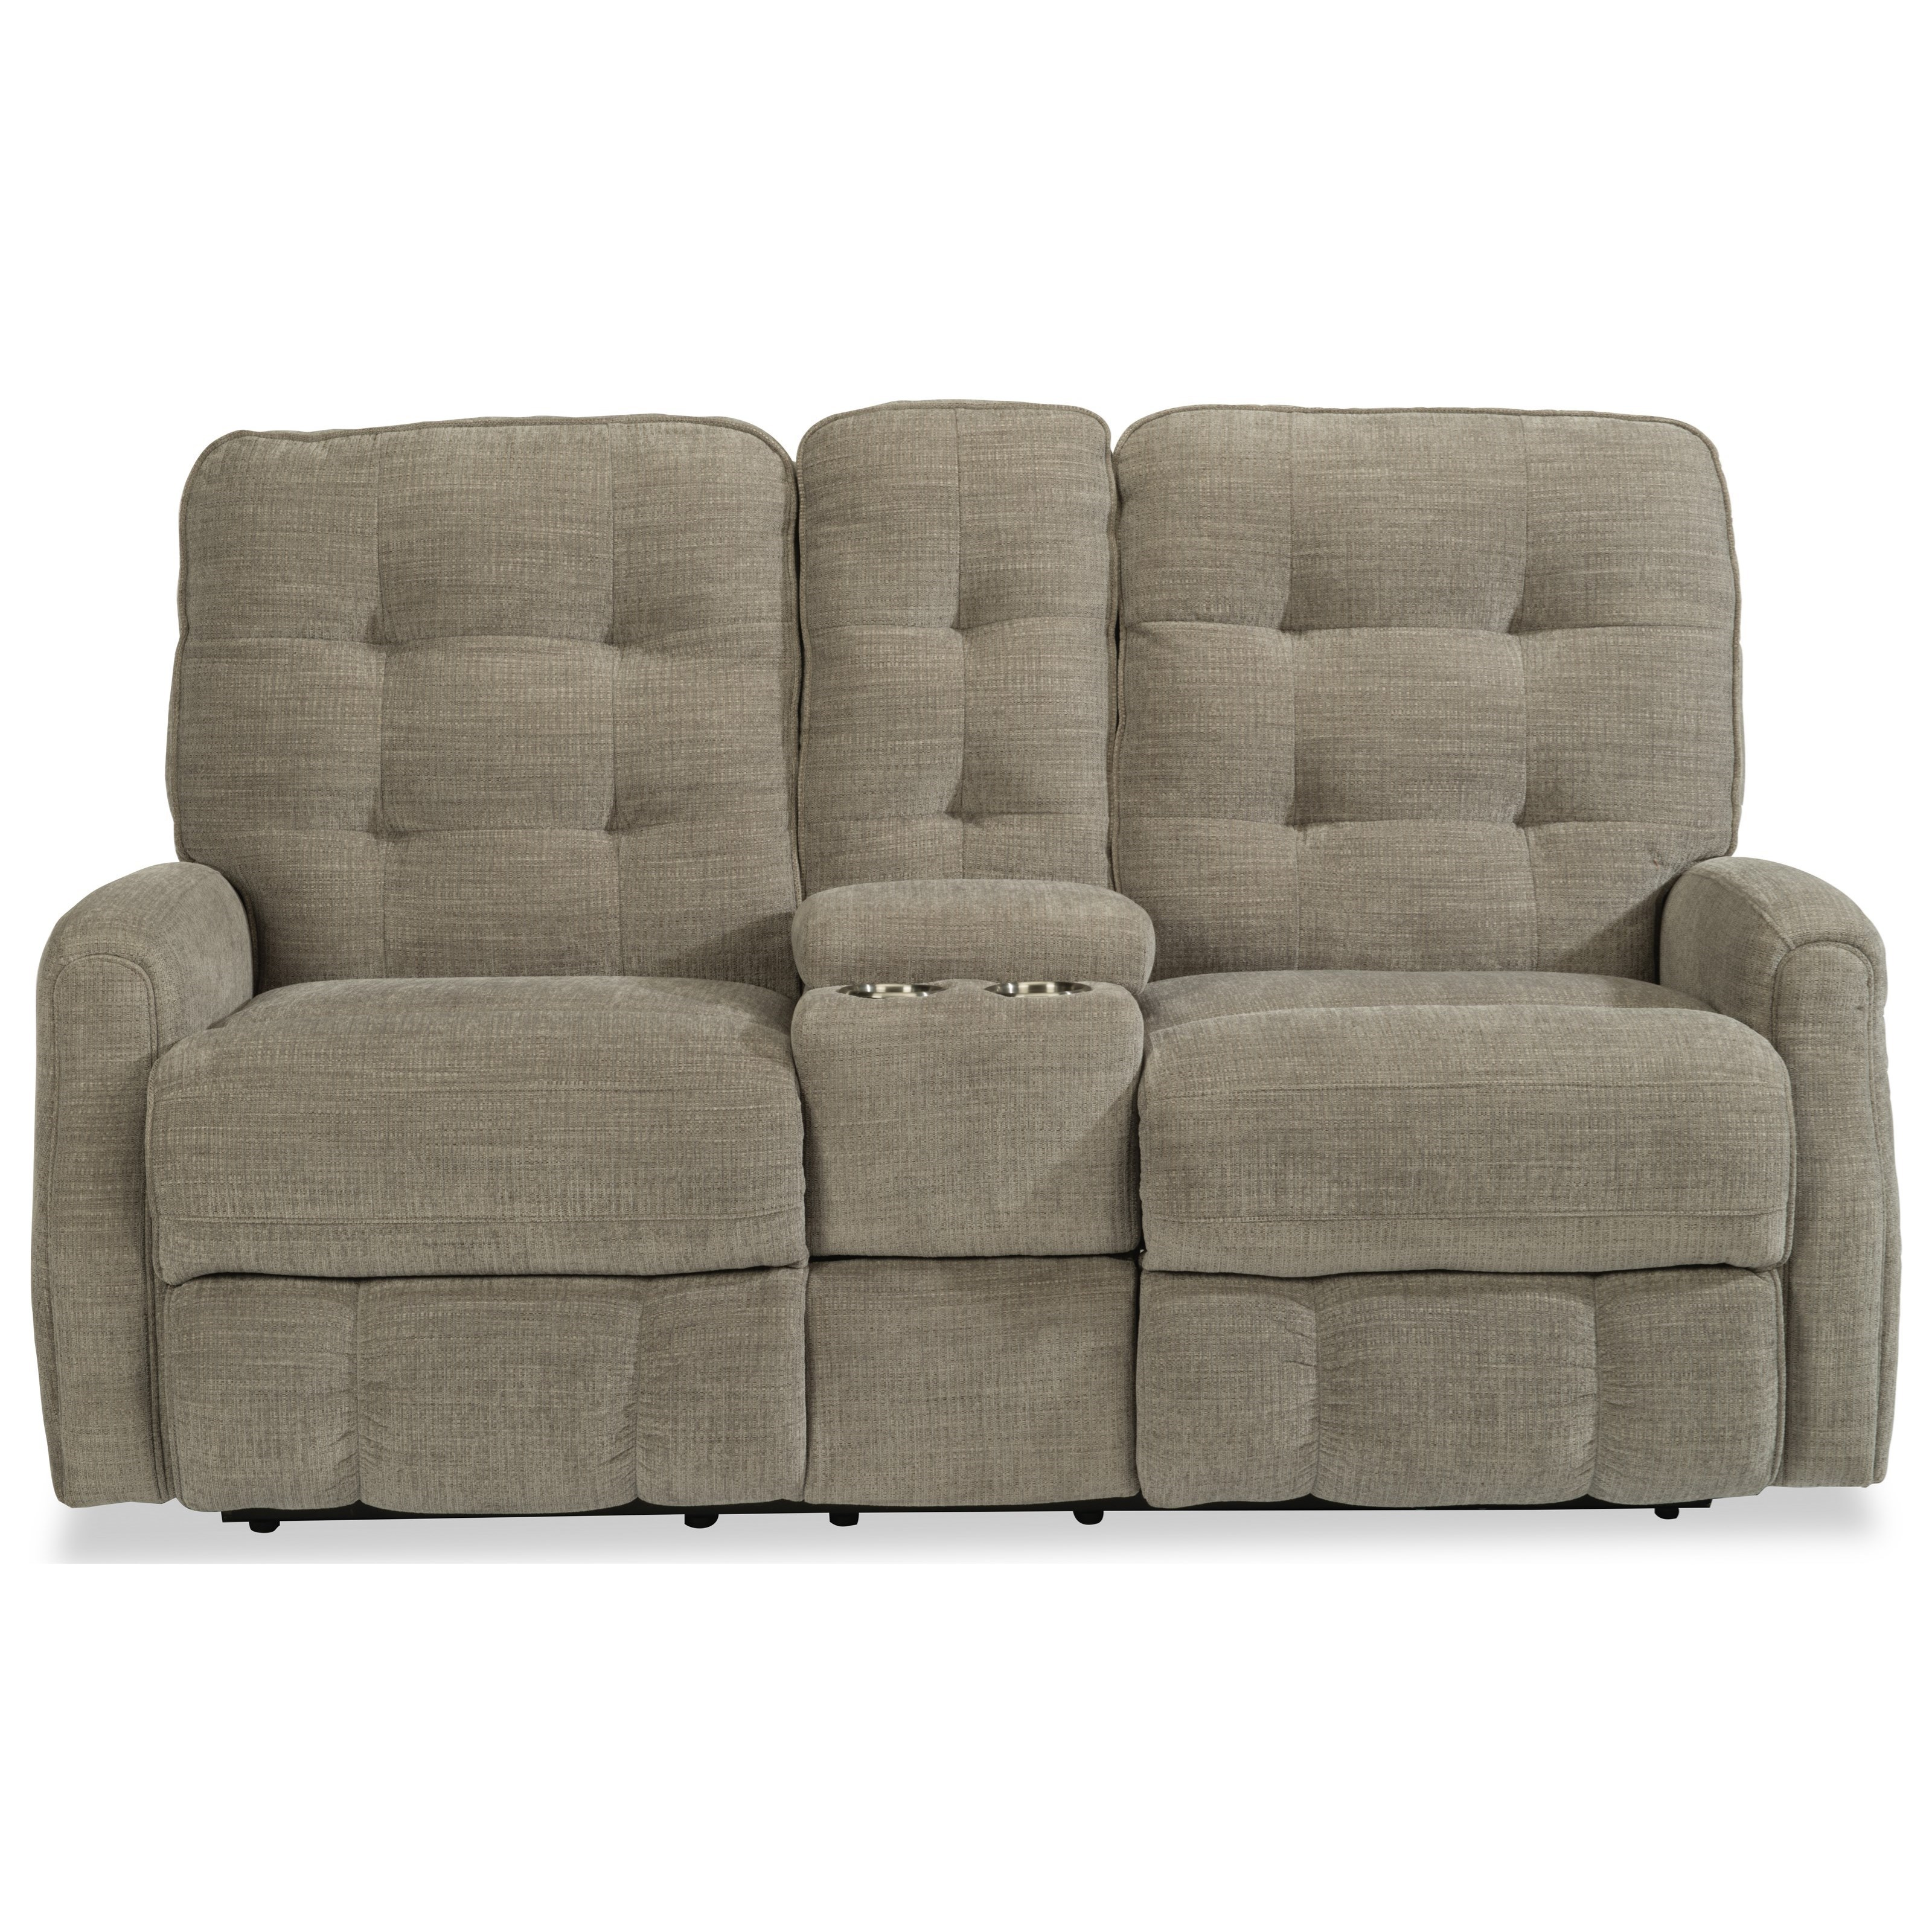 Devon Power Reclining Loveseat w/ Power Headrest by Flexsteel at Home Collections Furniture